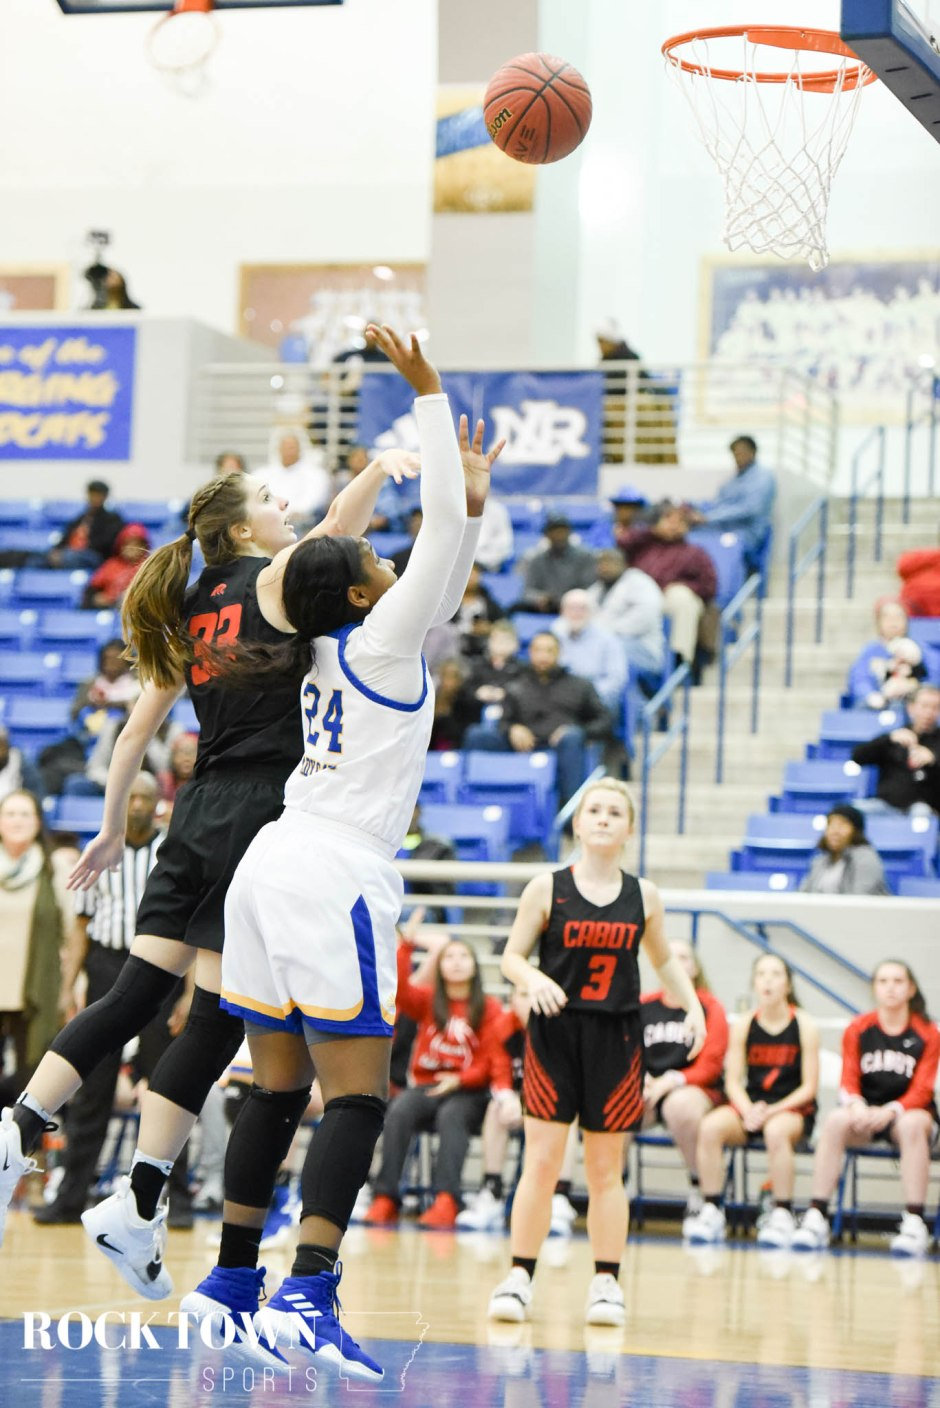 nlr_cabot_basketball_2019_(int)-7